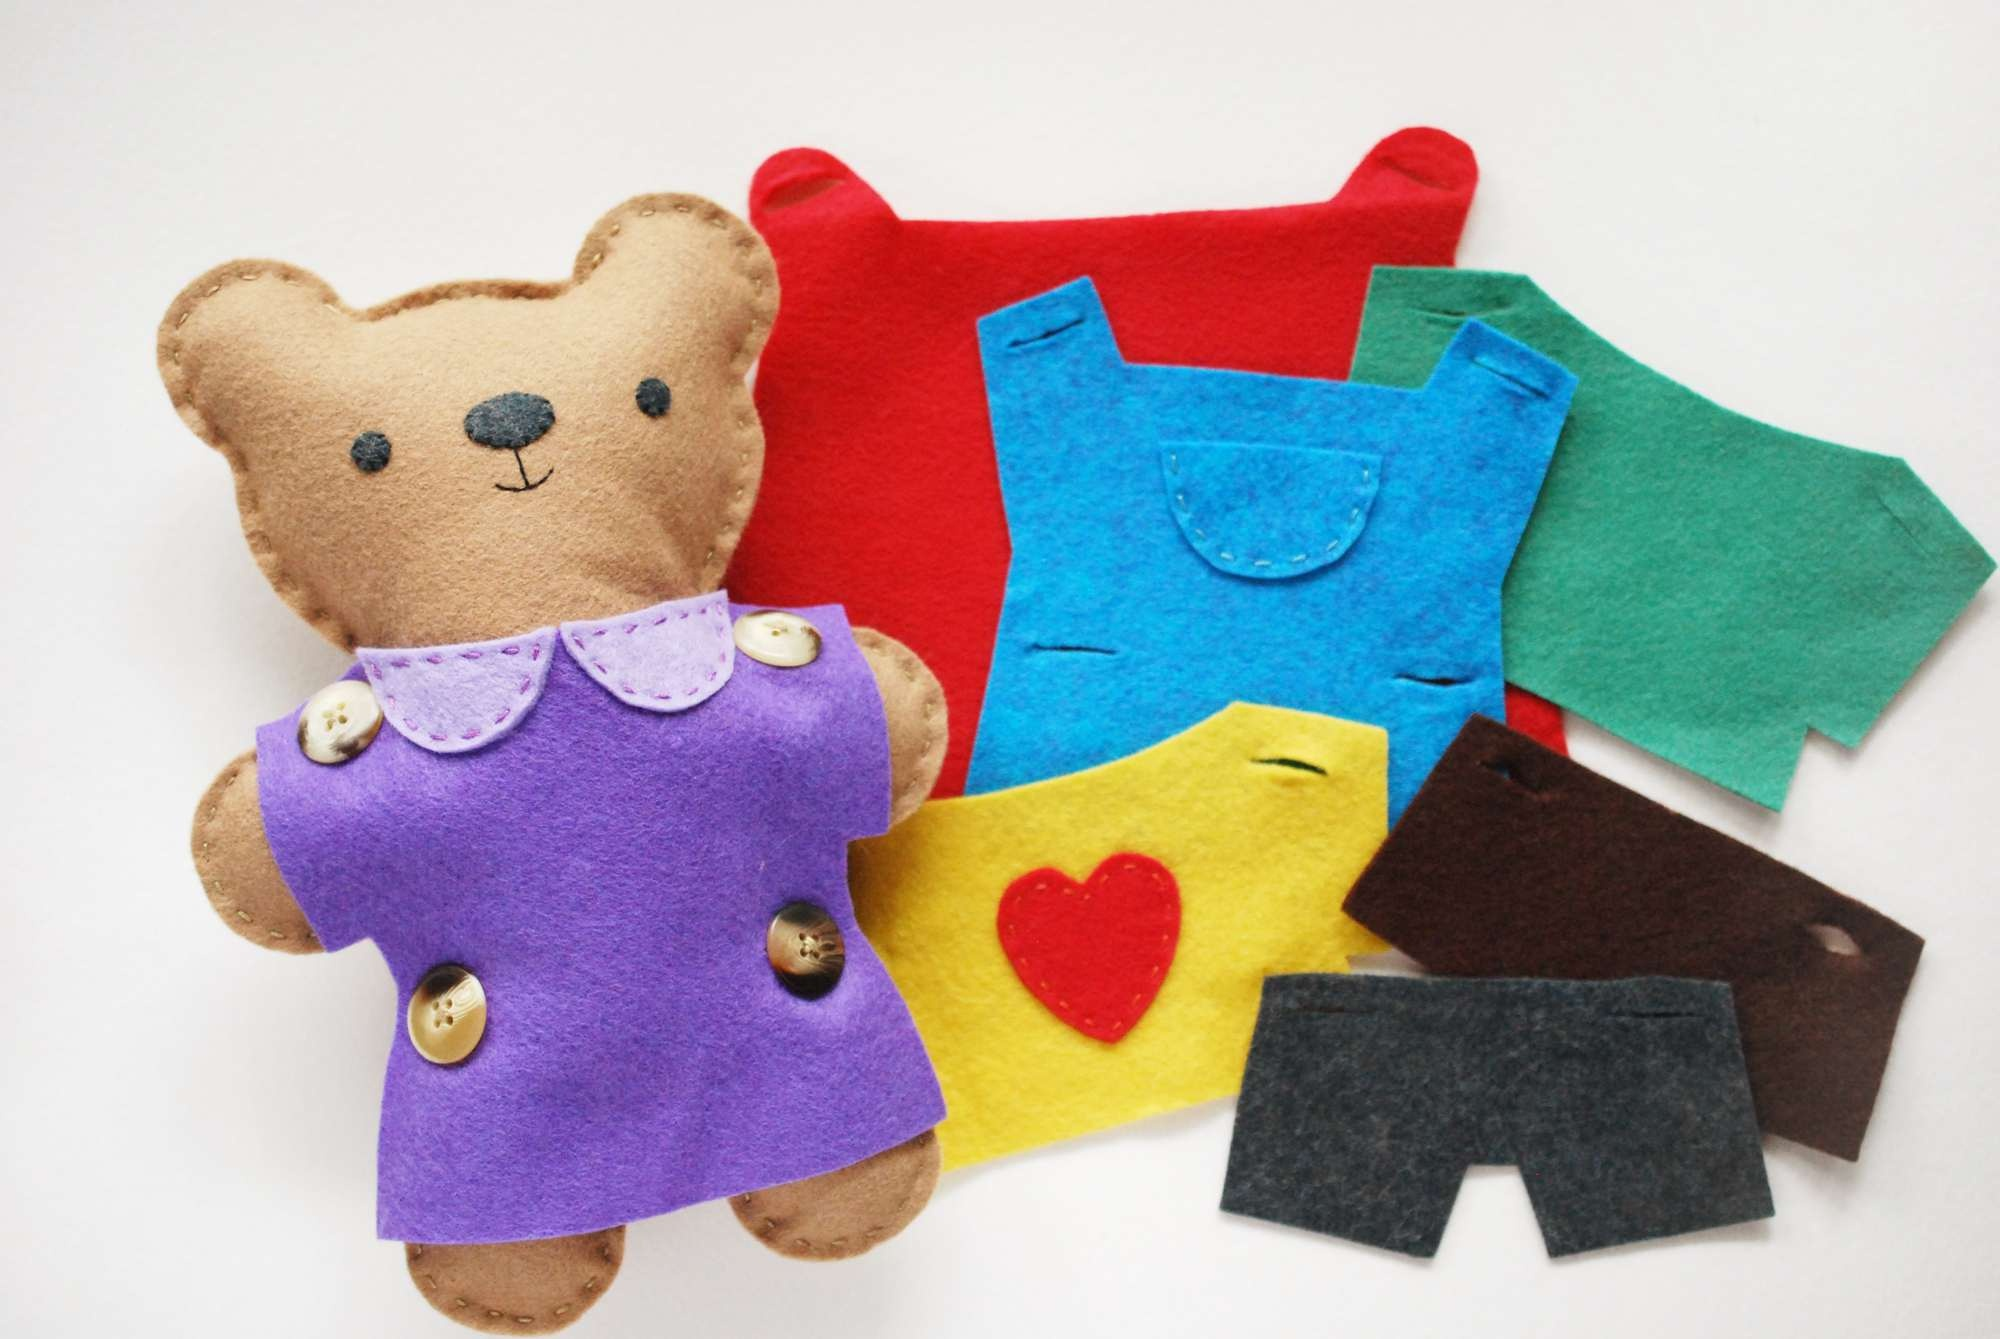 10 Adorable Teddy Bear Sewing Patterns - Free Printable Teddy Bear Clothes Patterns